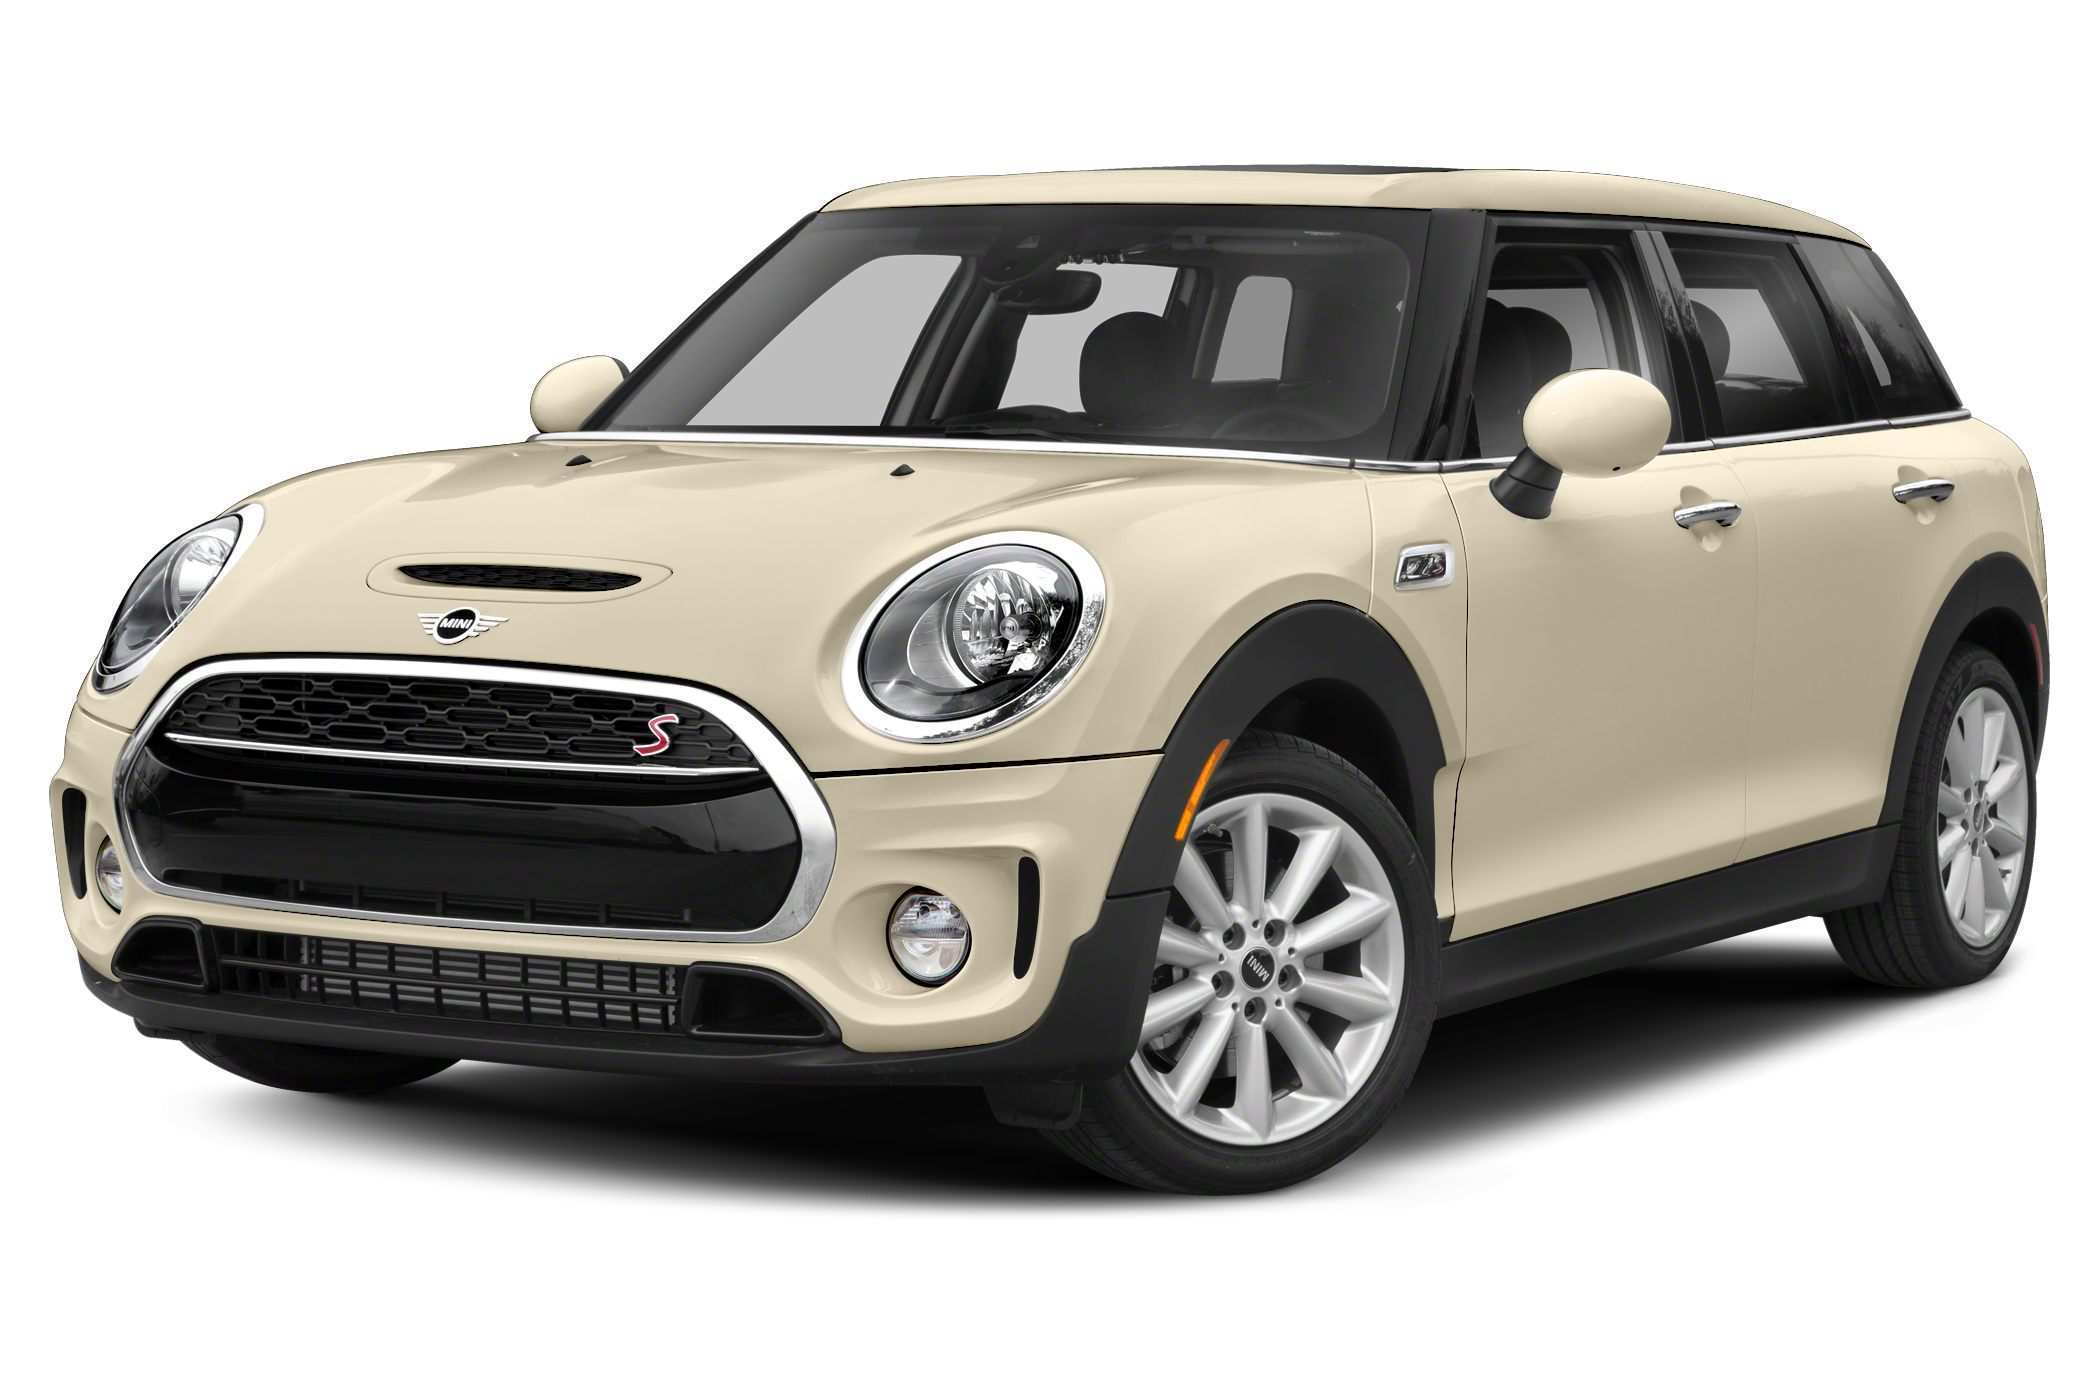 18 All New 2019 Mini Specs Pictures by 2019 Mini Specs